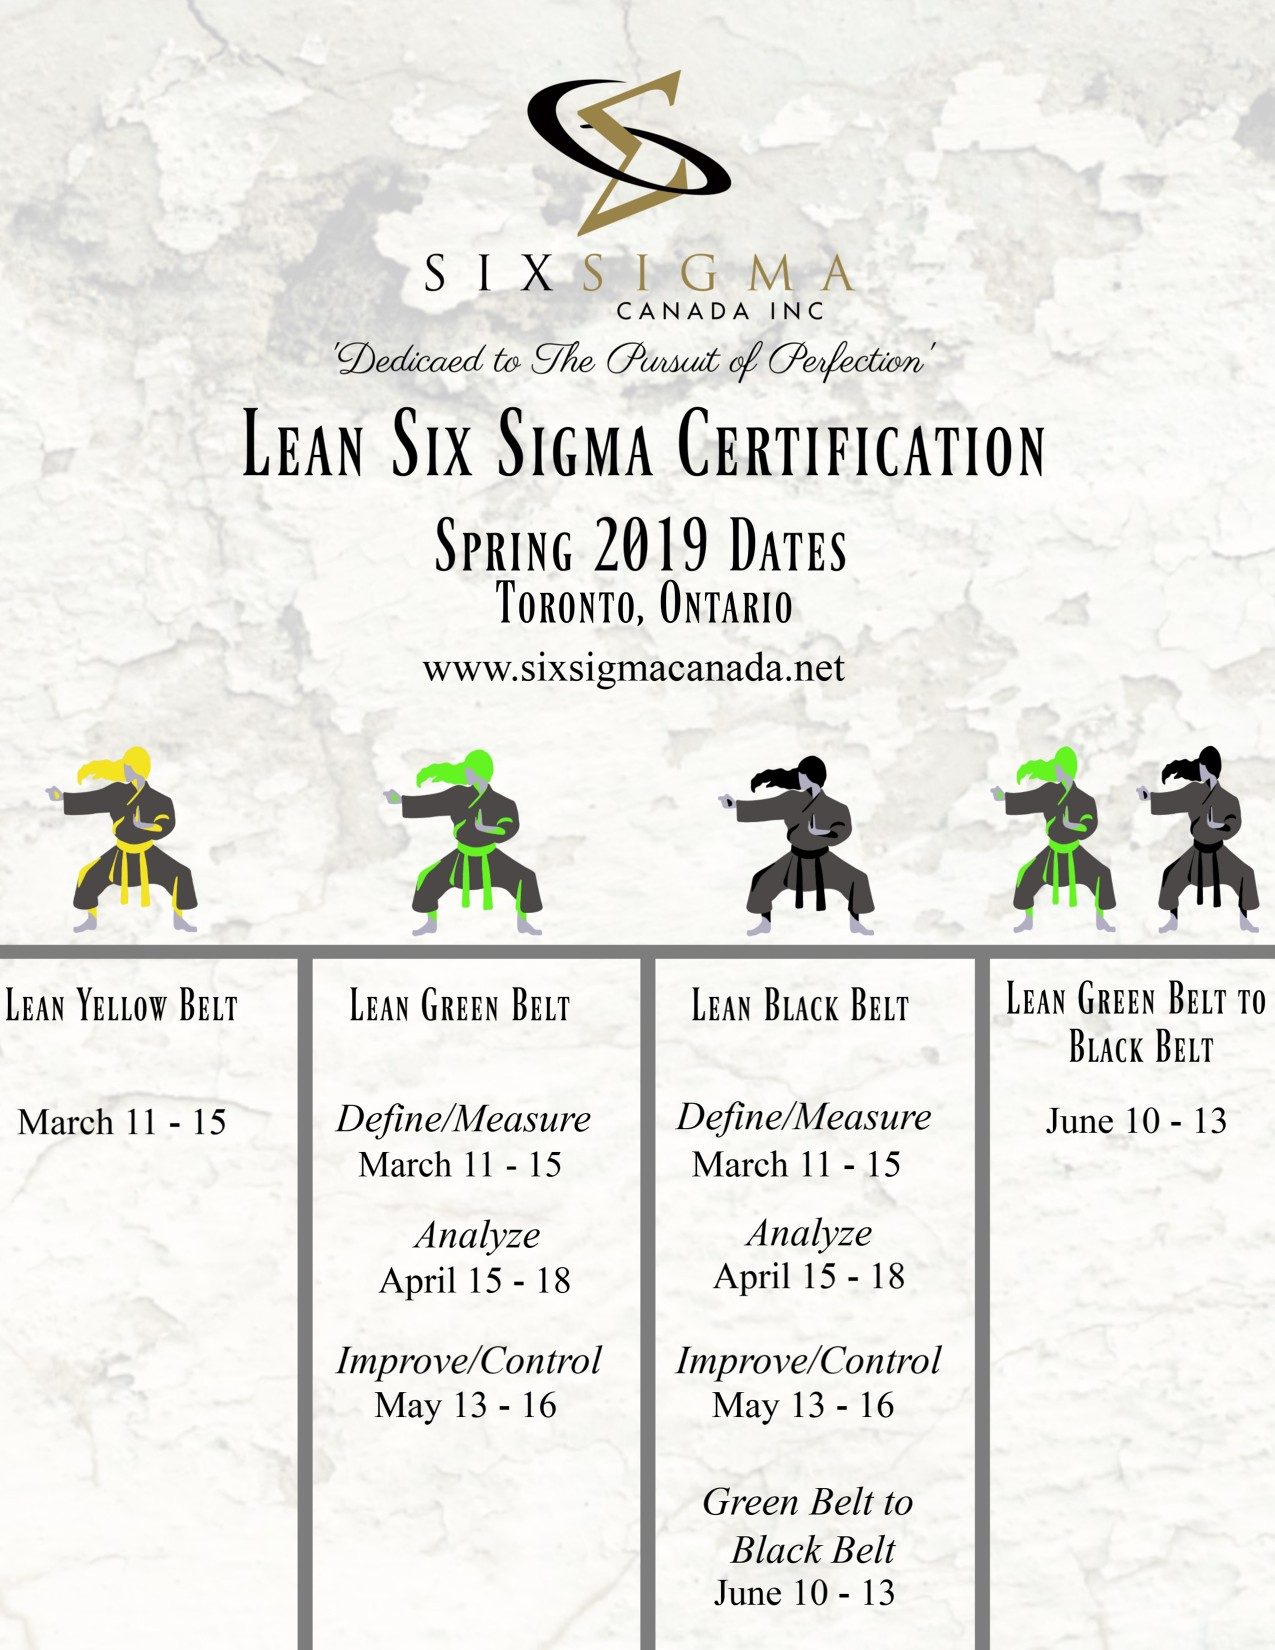 Six Sigma Canada Certification Advertisement